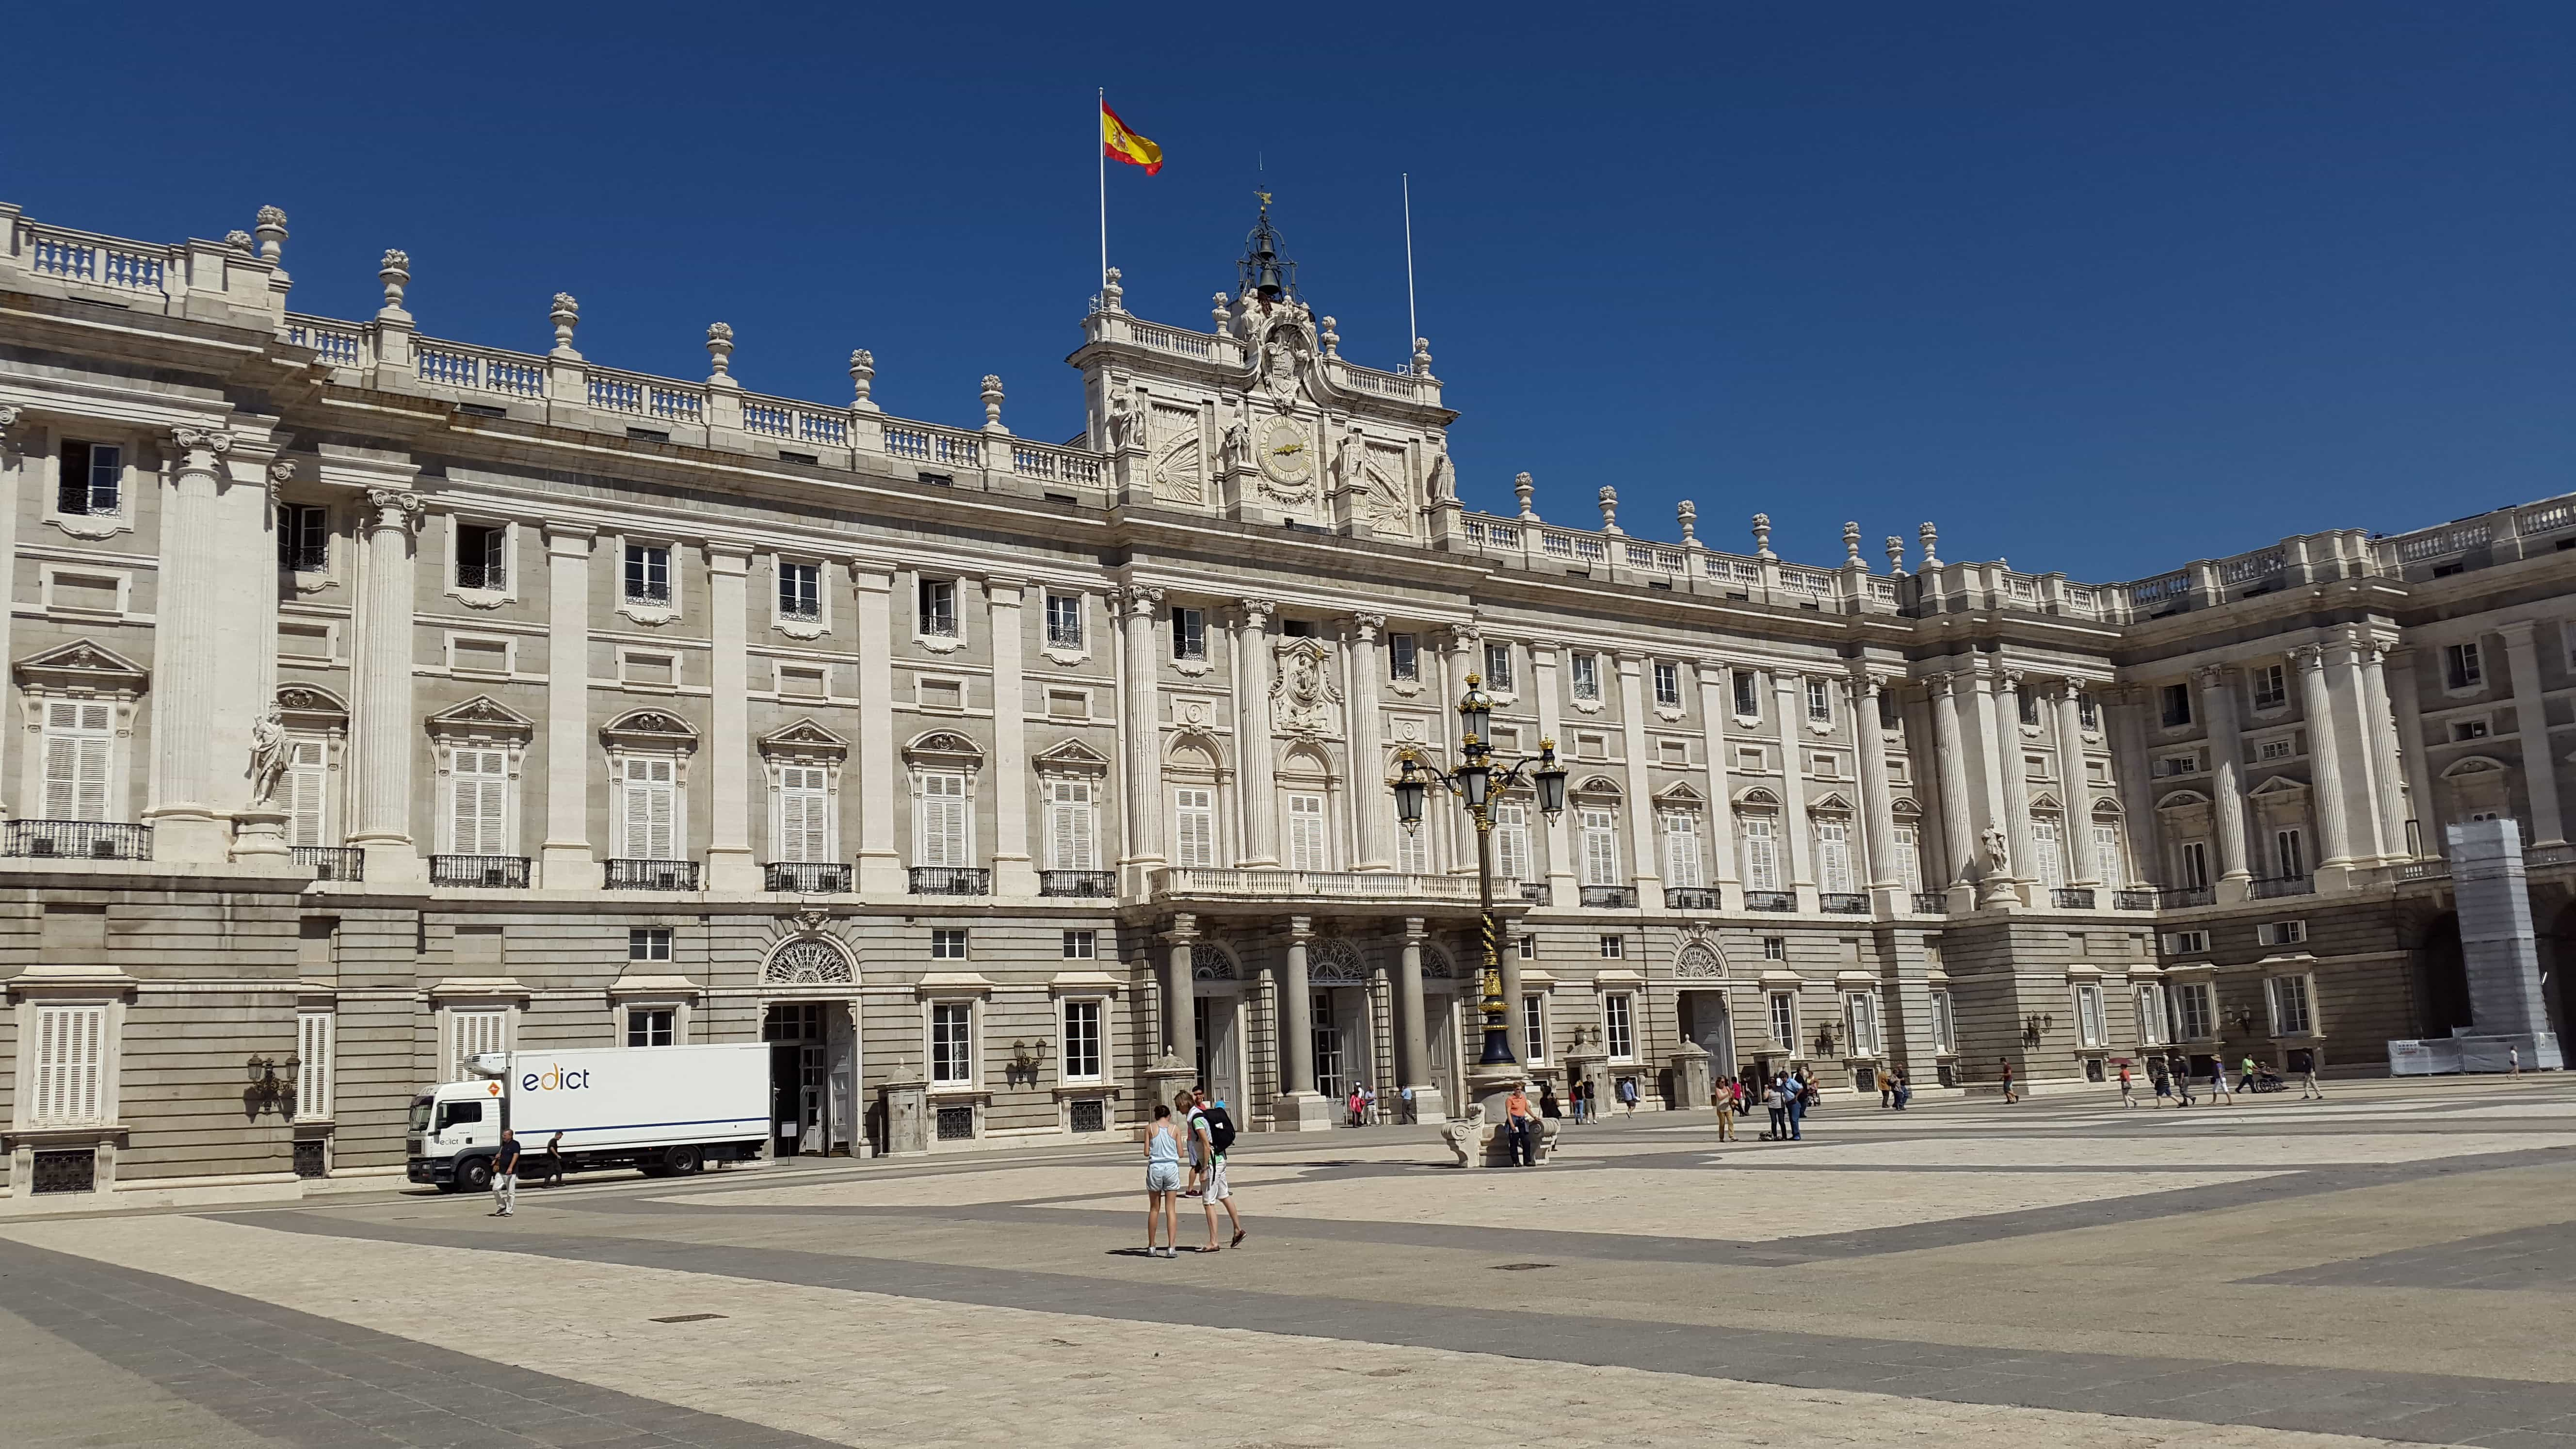 Palacio Real de Madrid/ Royal Palace of Madrid